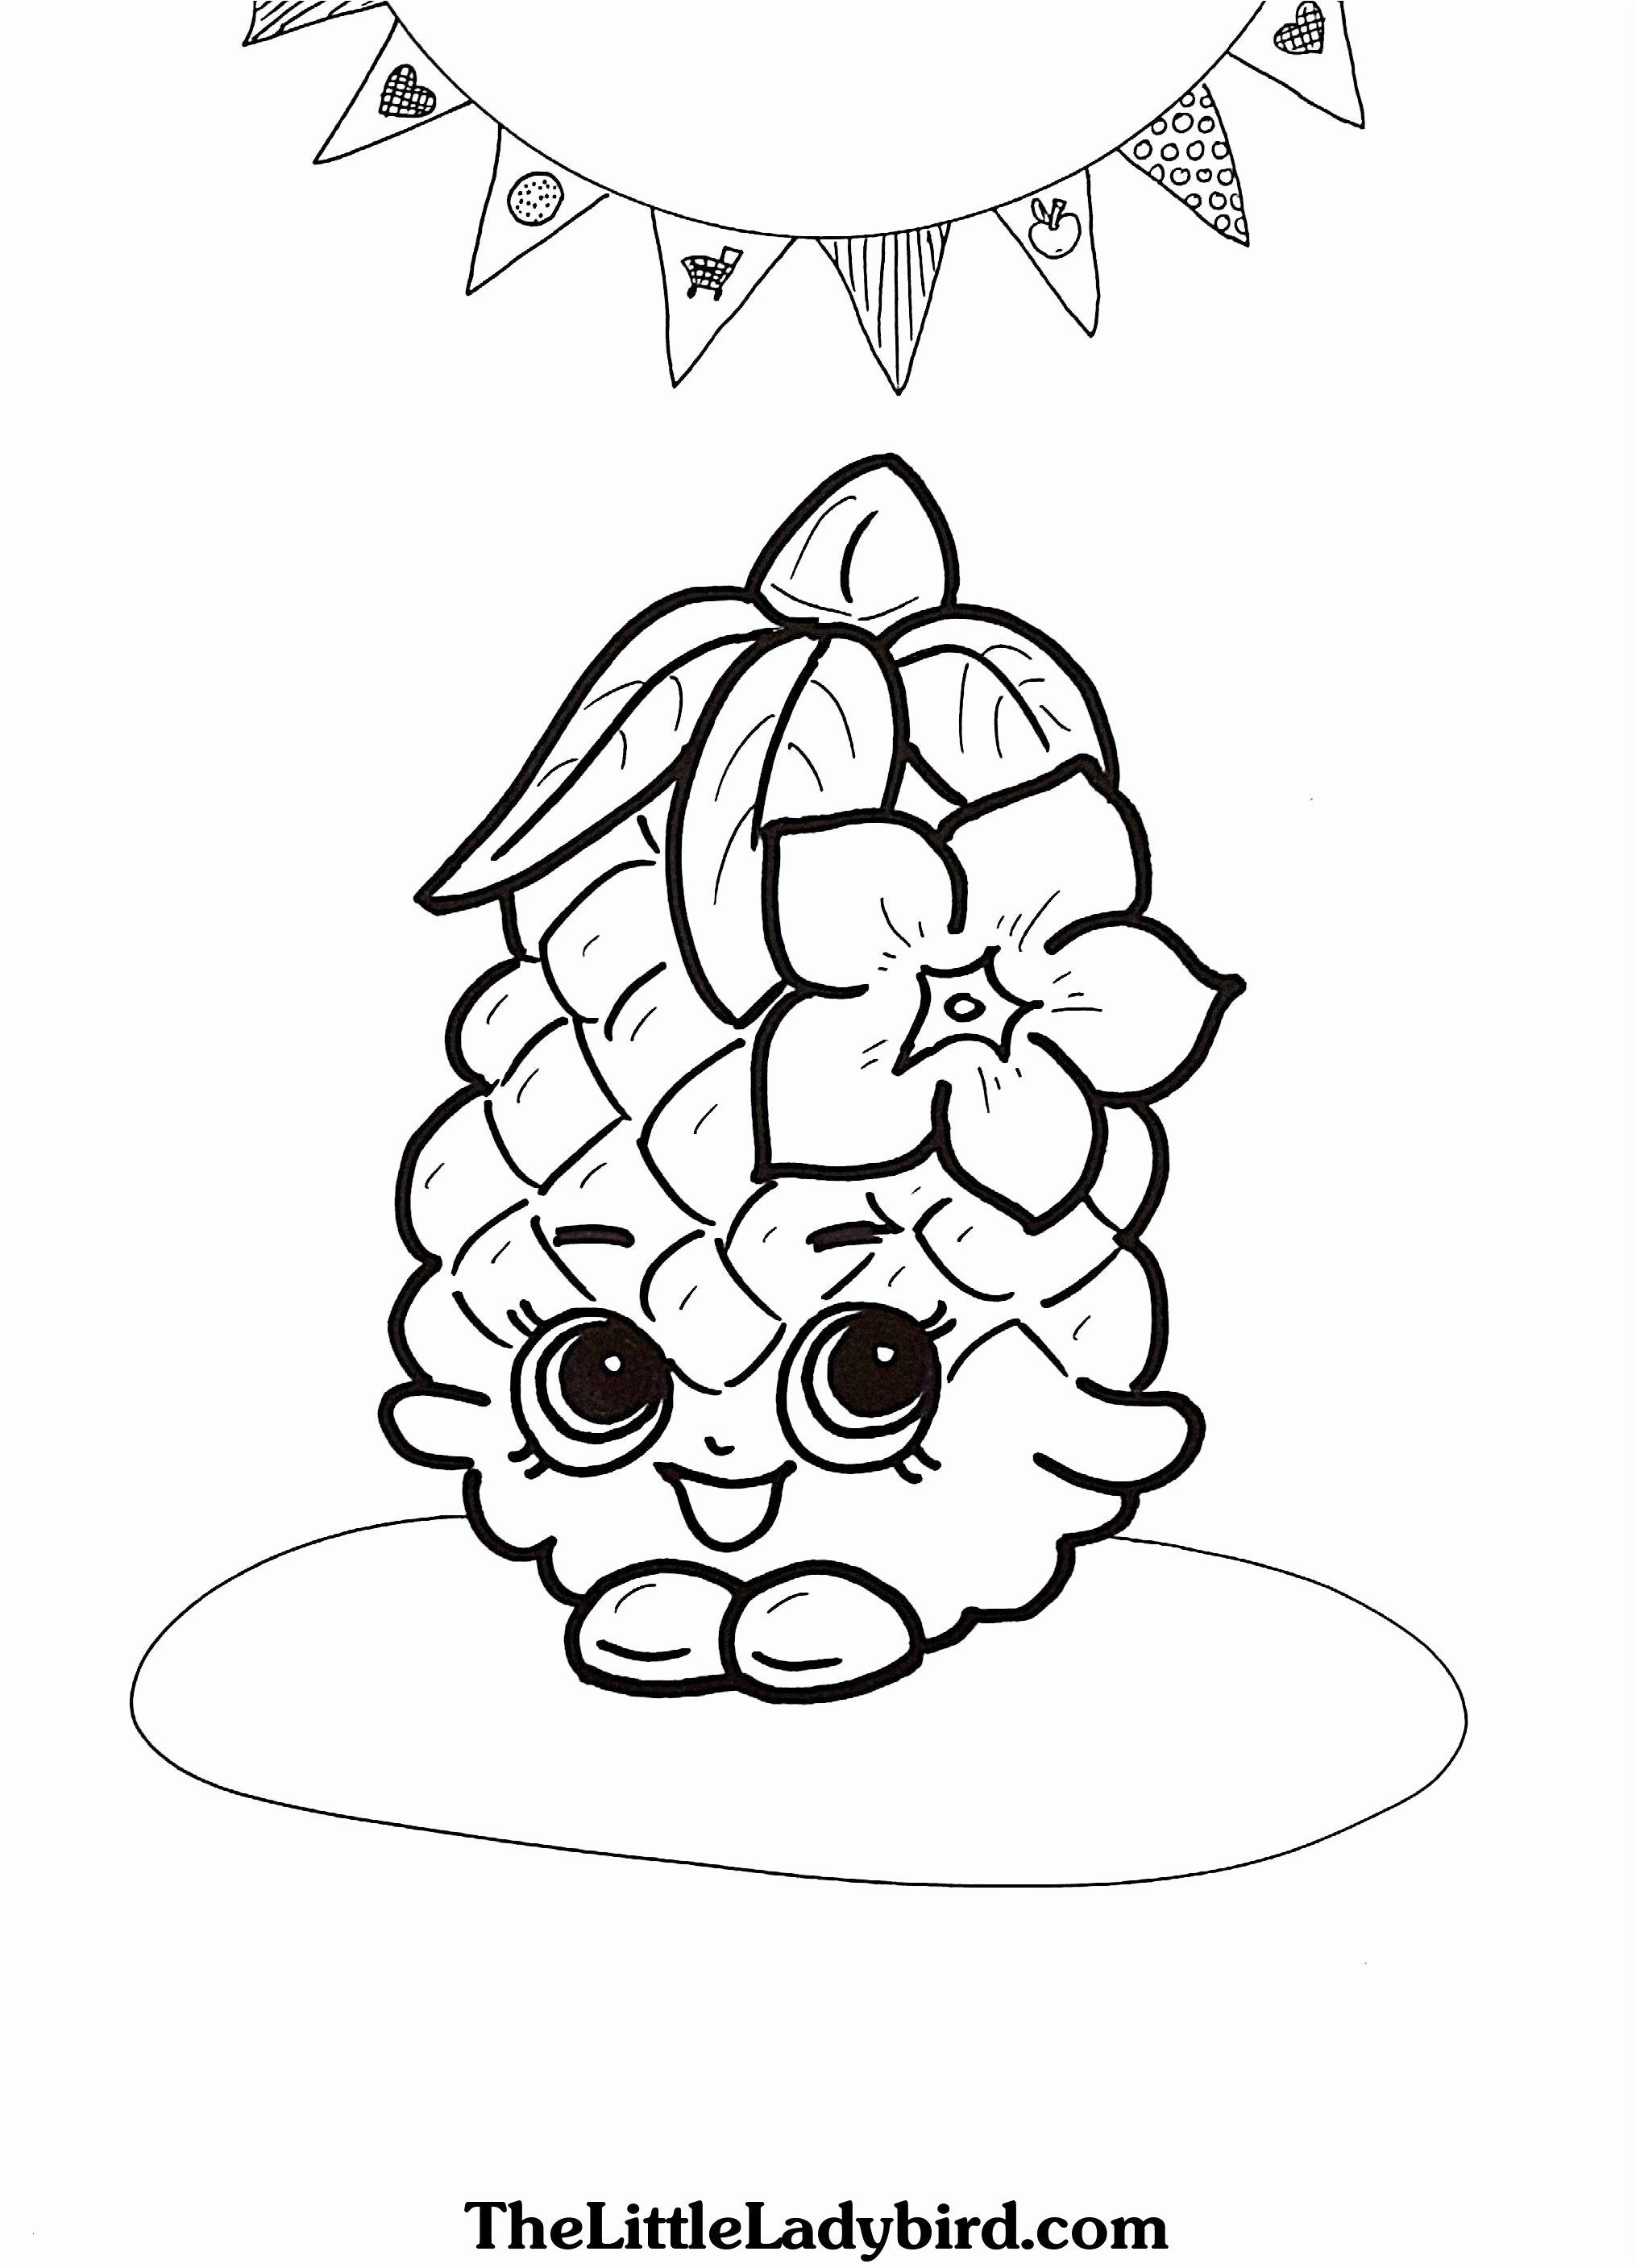 Minion Coloring Pages Free  to Print 9f - Free Download